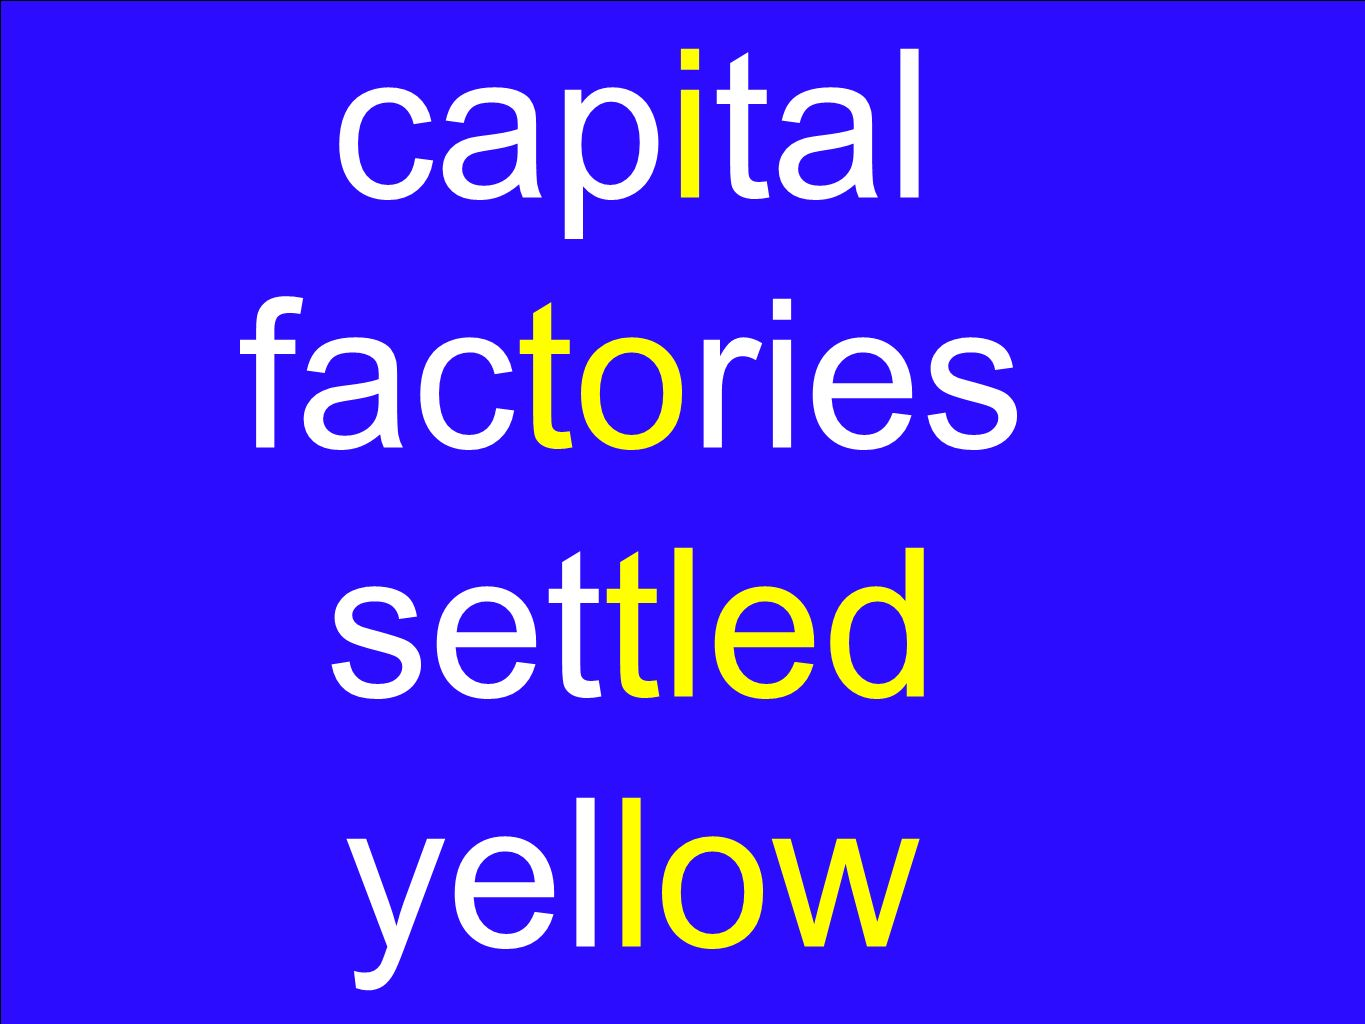 capital factories settled yellow